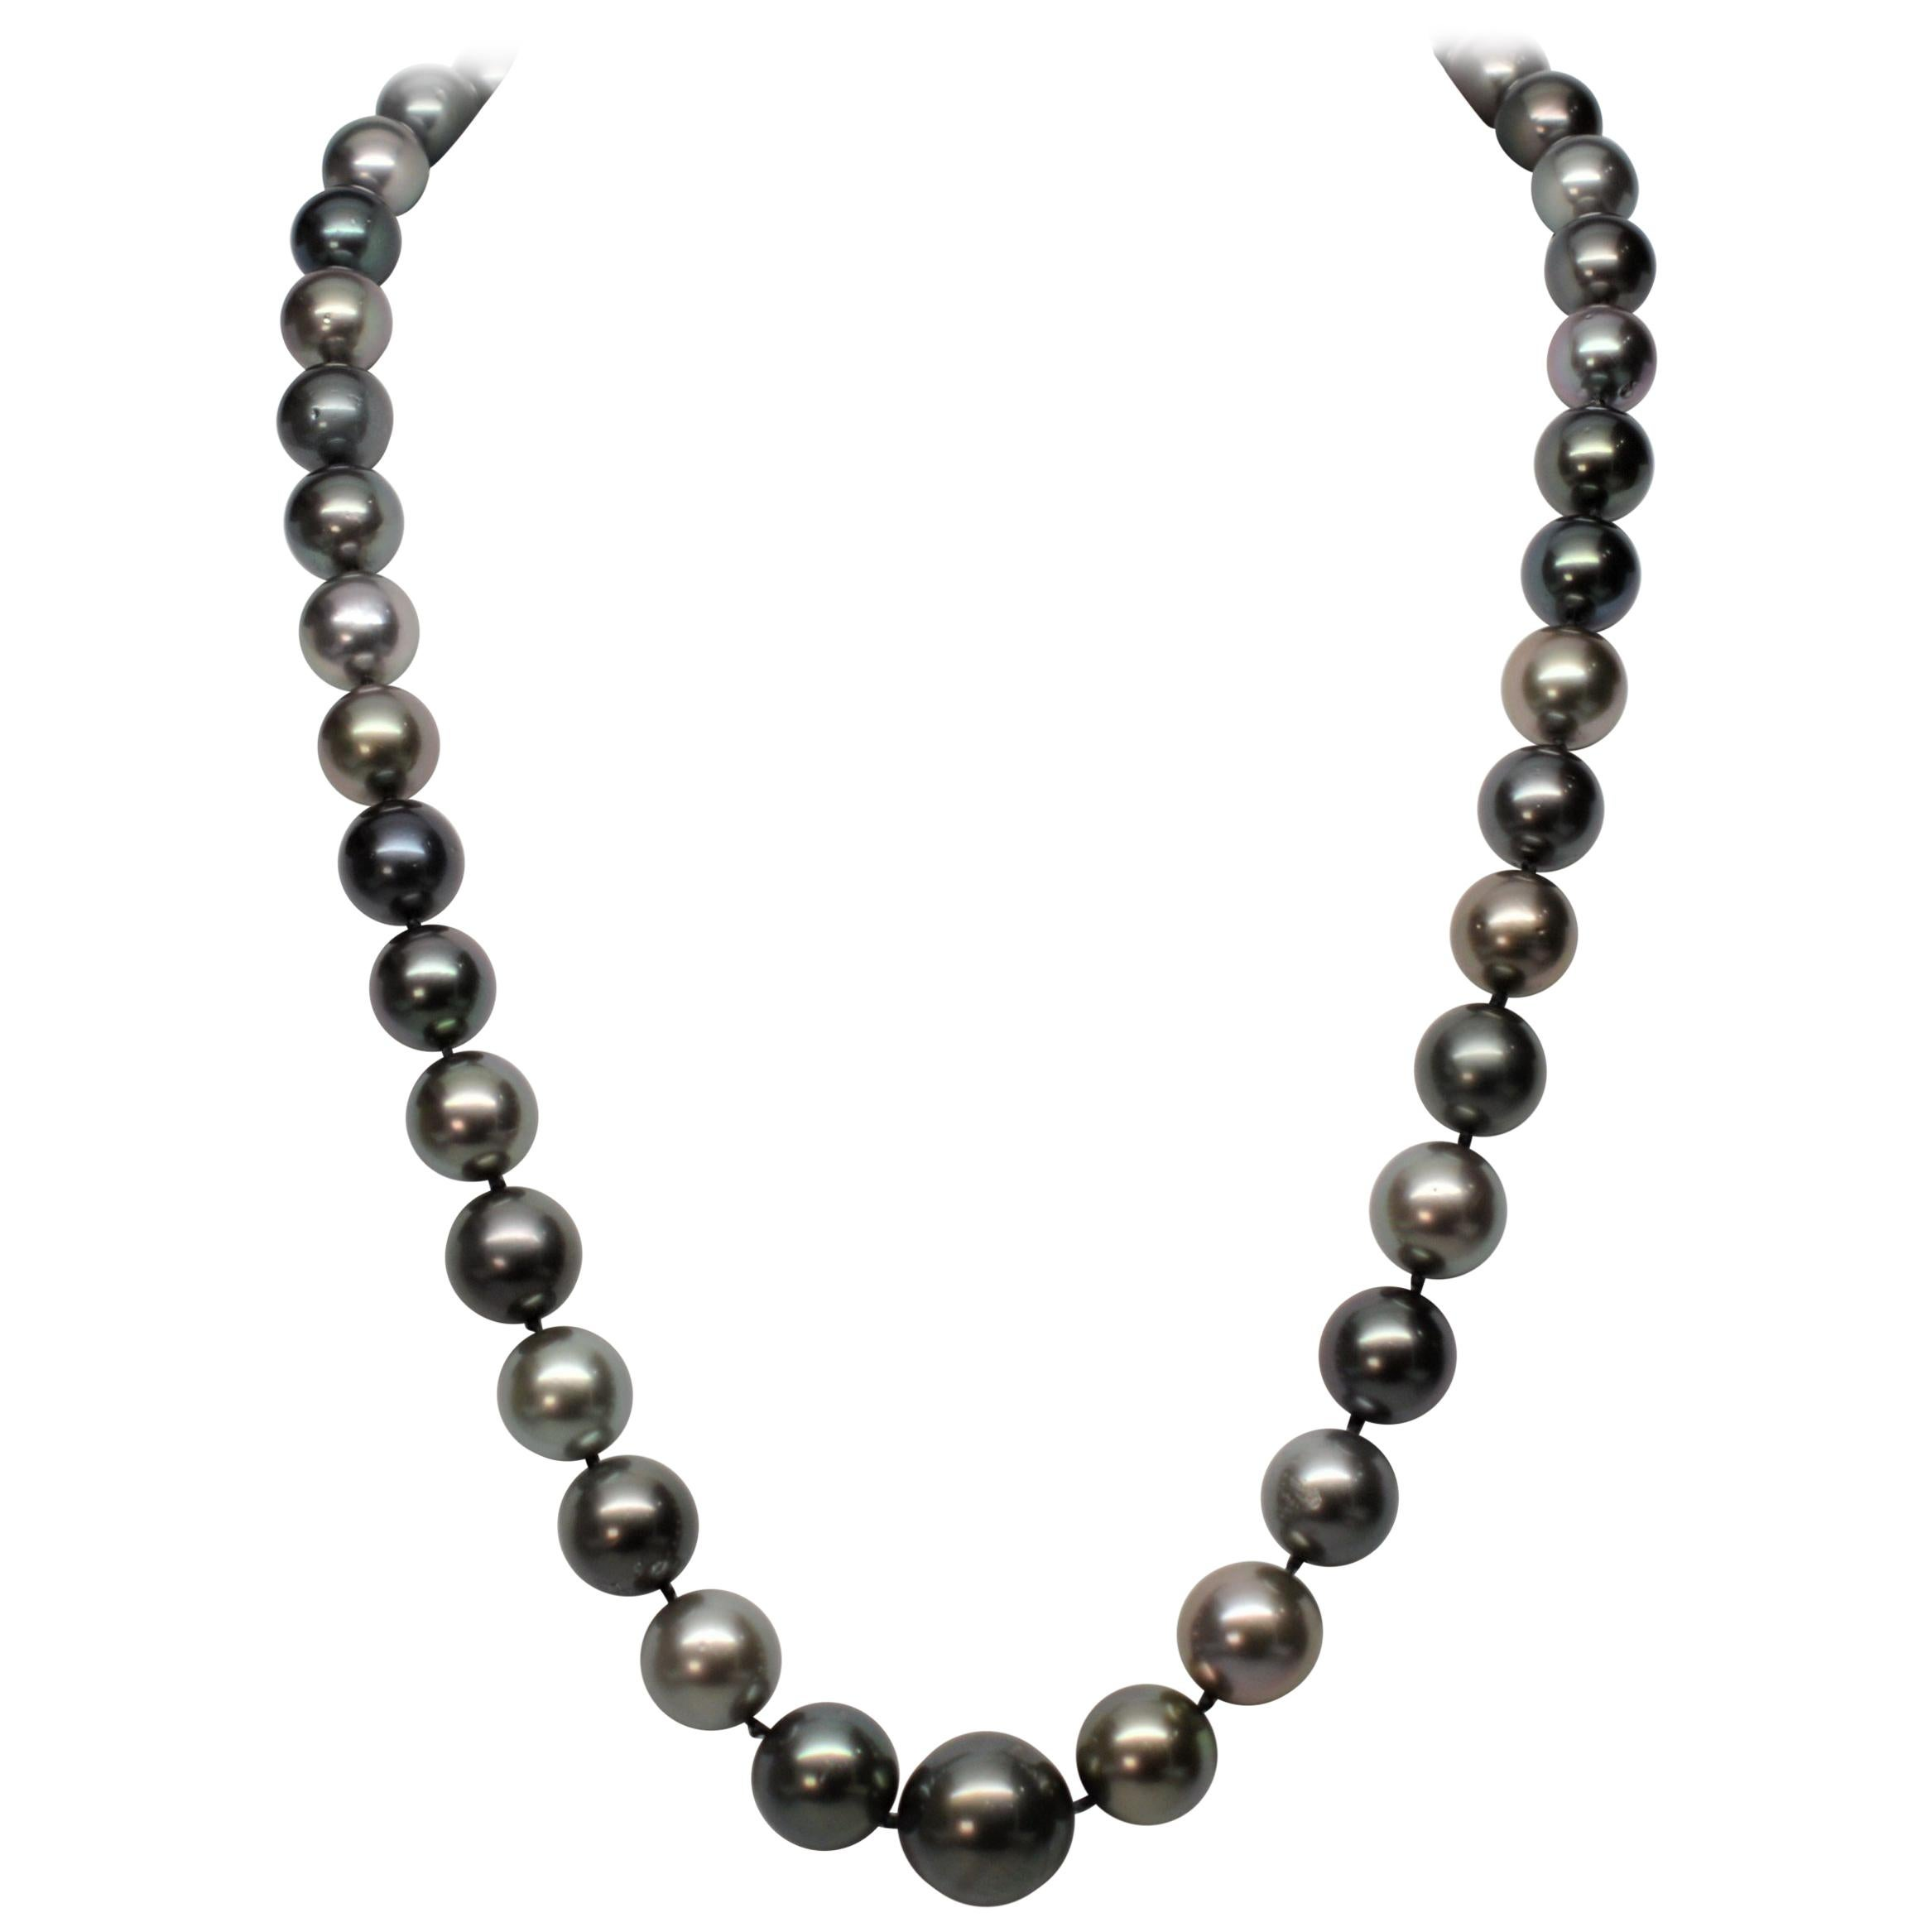 South Sea Tahitian Pearl Necklace with 14 Karat White Gold Clasp